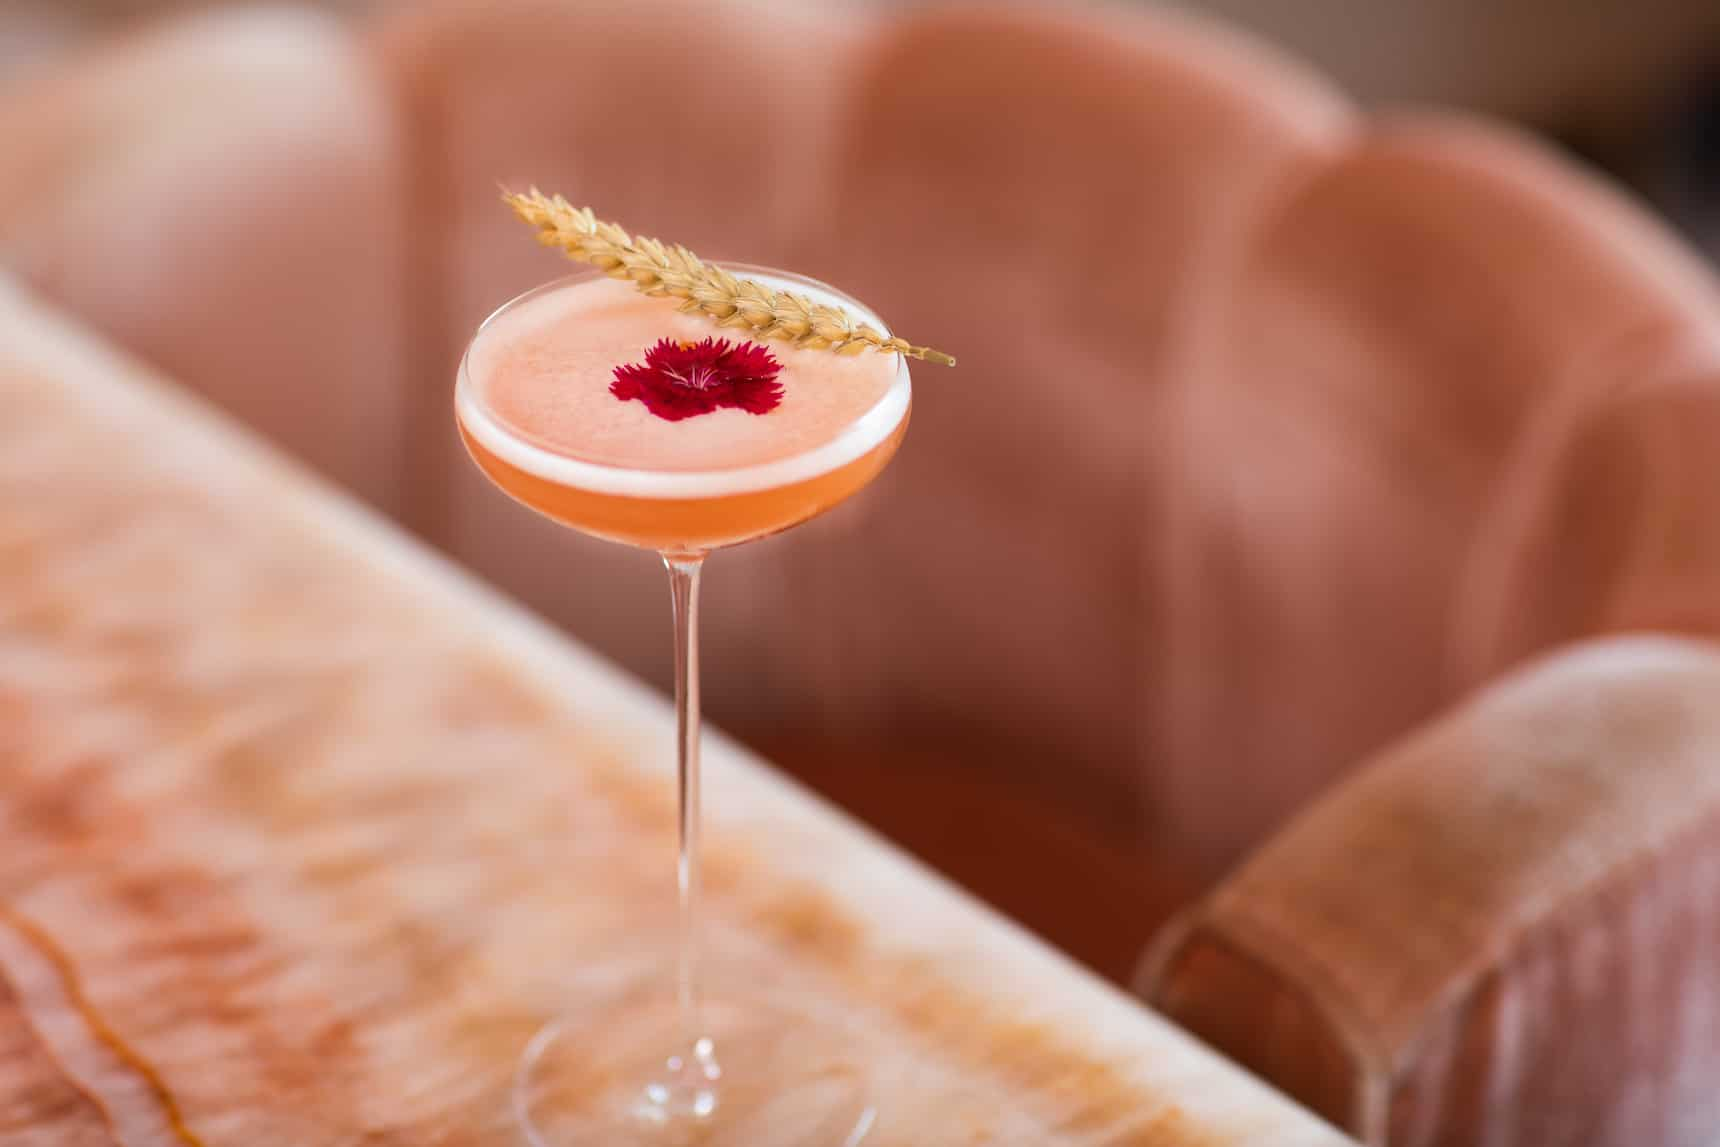 pink cocktail wheat garnish on table